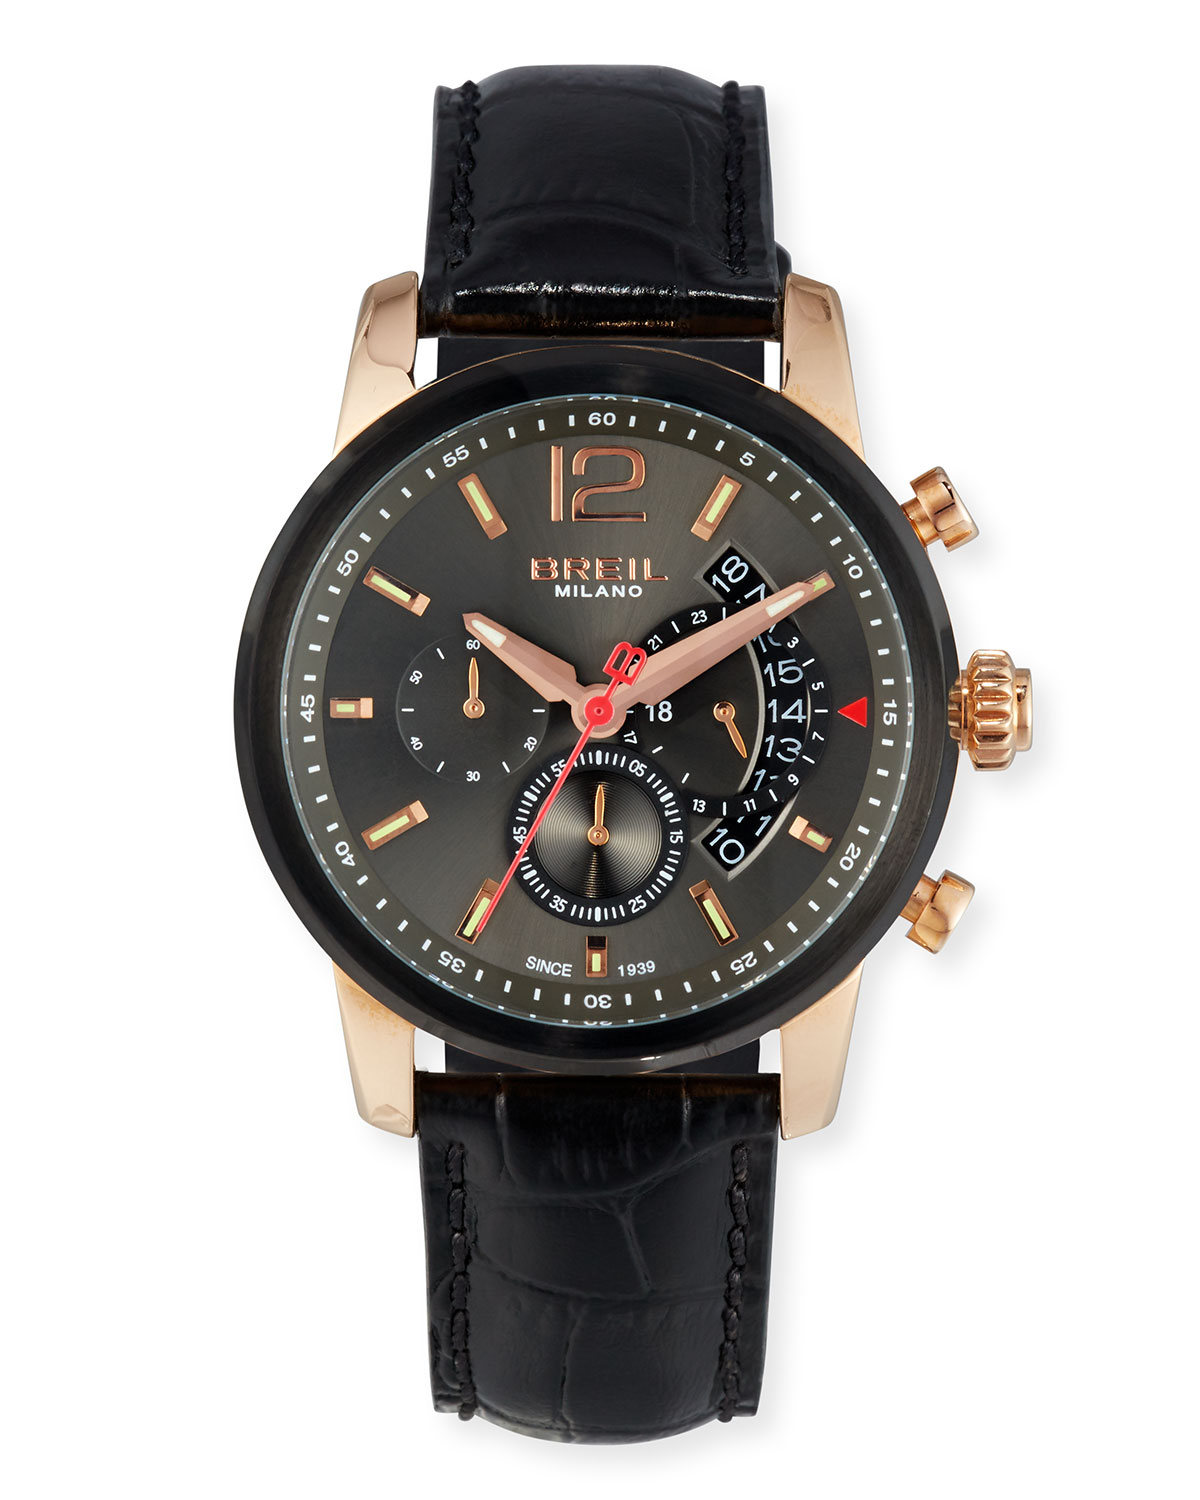 Miglia Chronograph Watch with Leather Strap